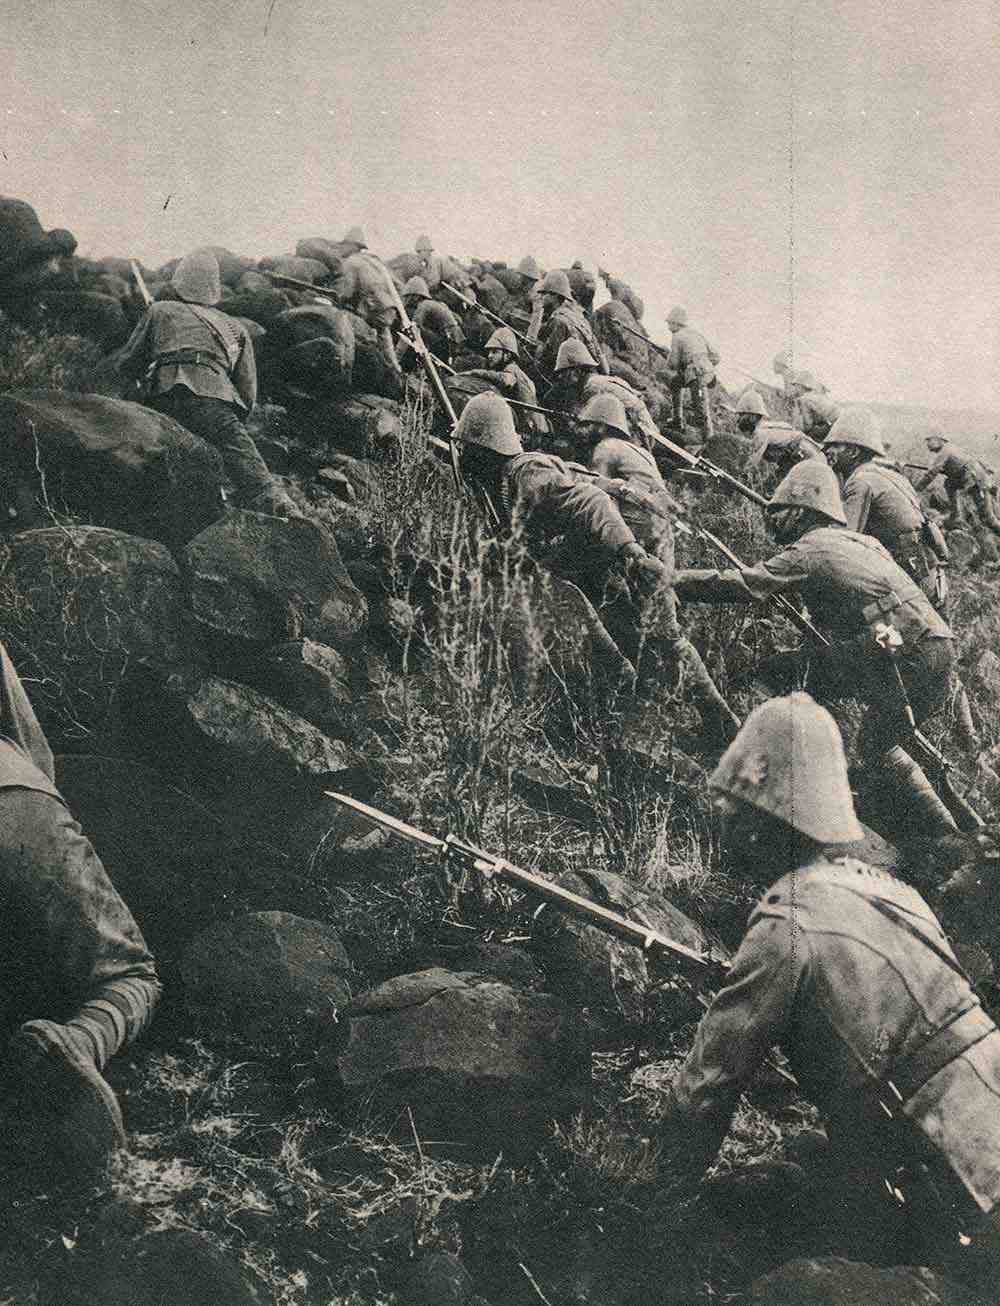 Battle of Paardeberg (South African War)